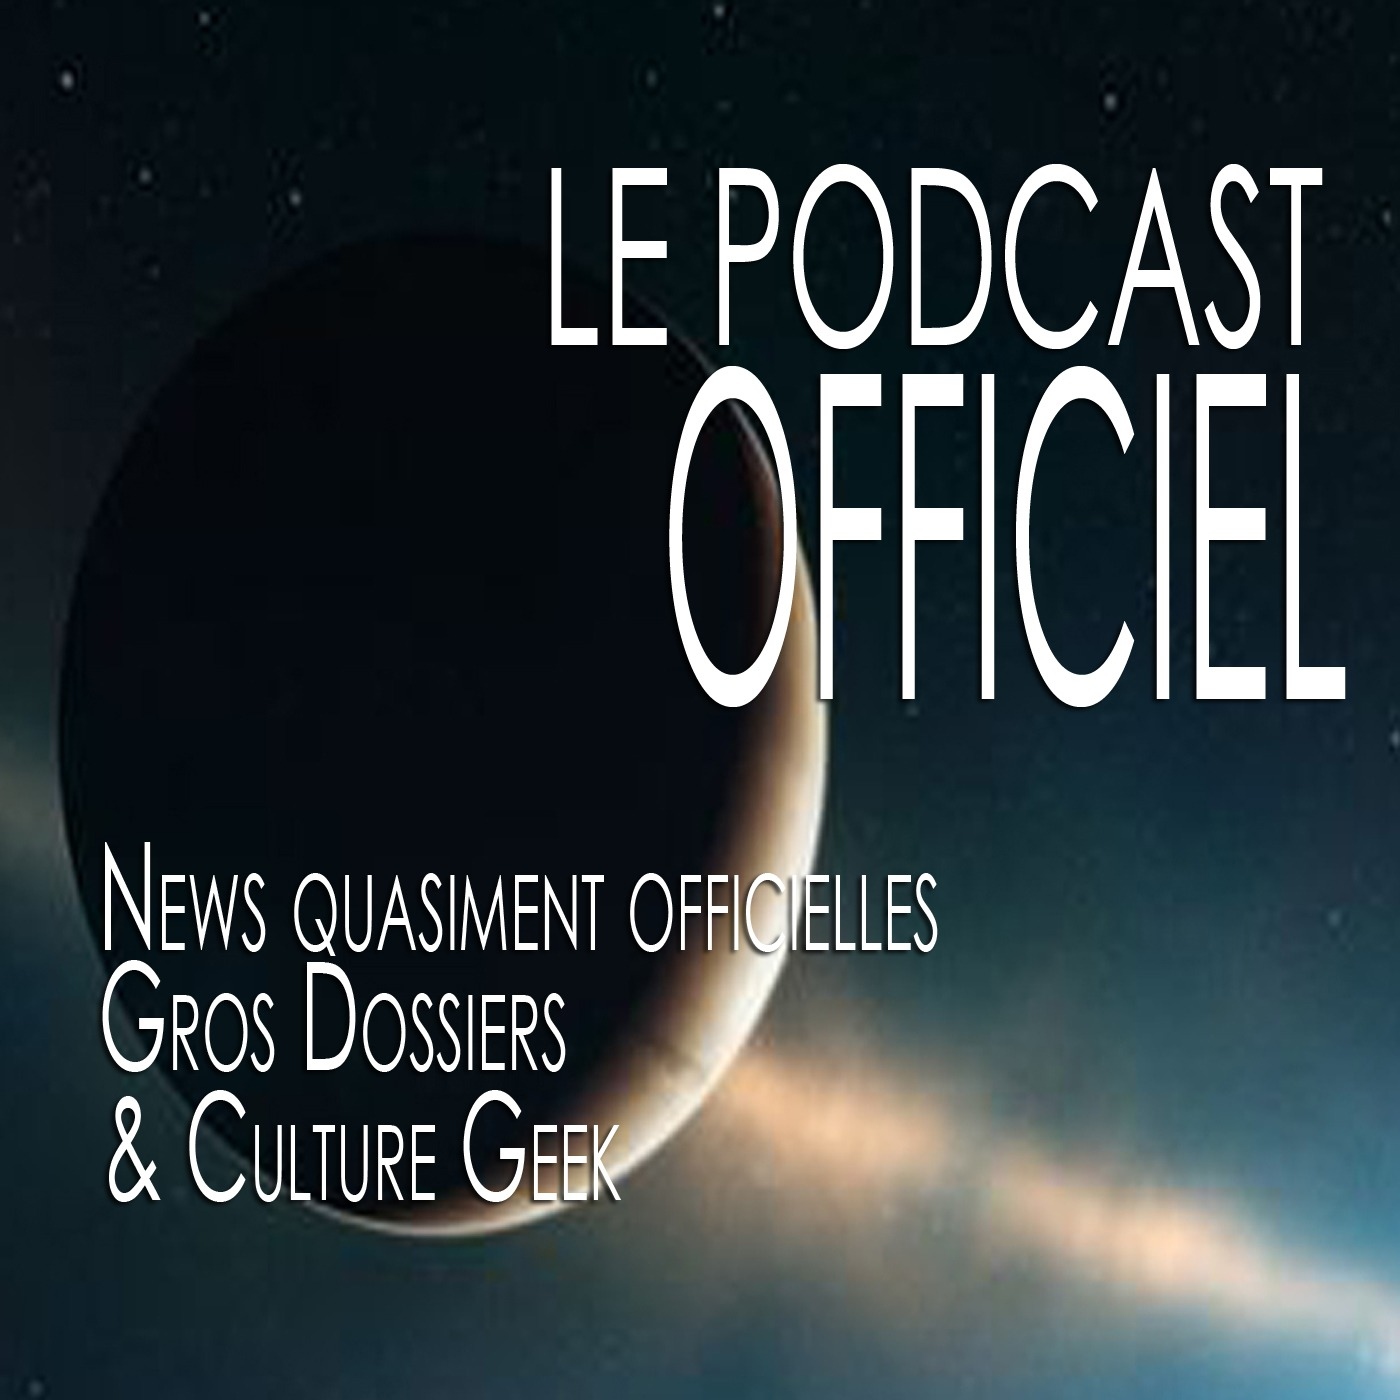 Le Podcast Officiel